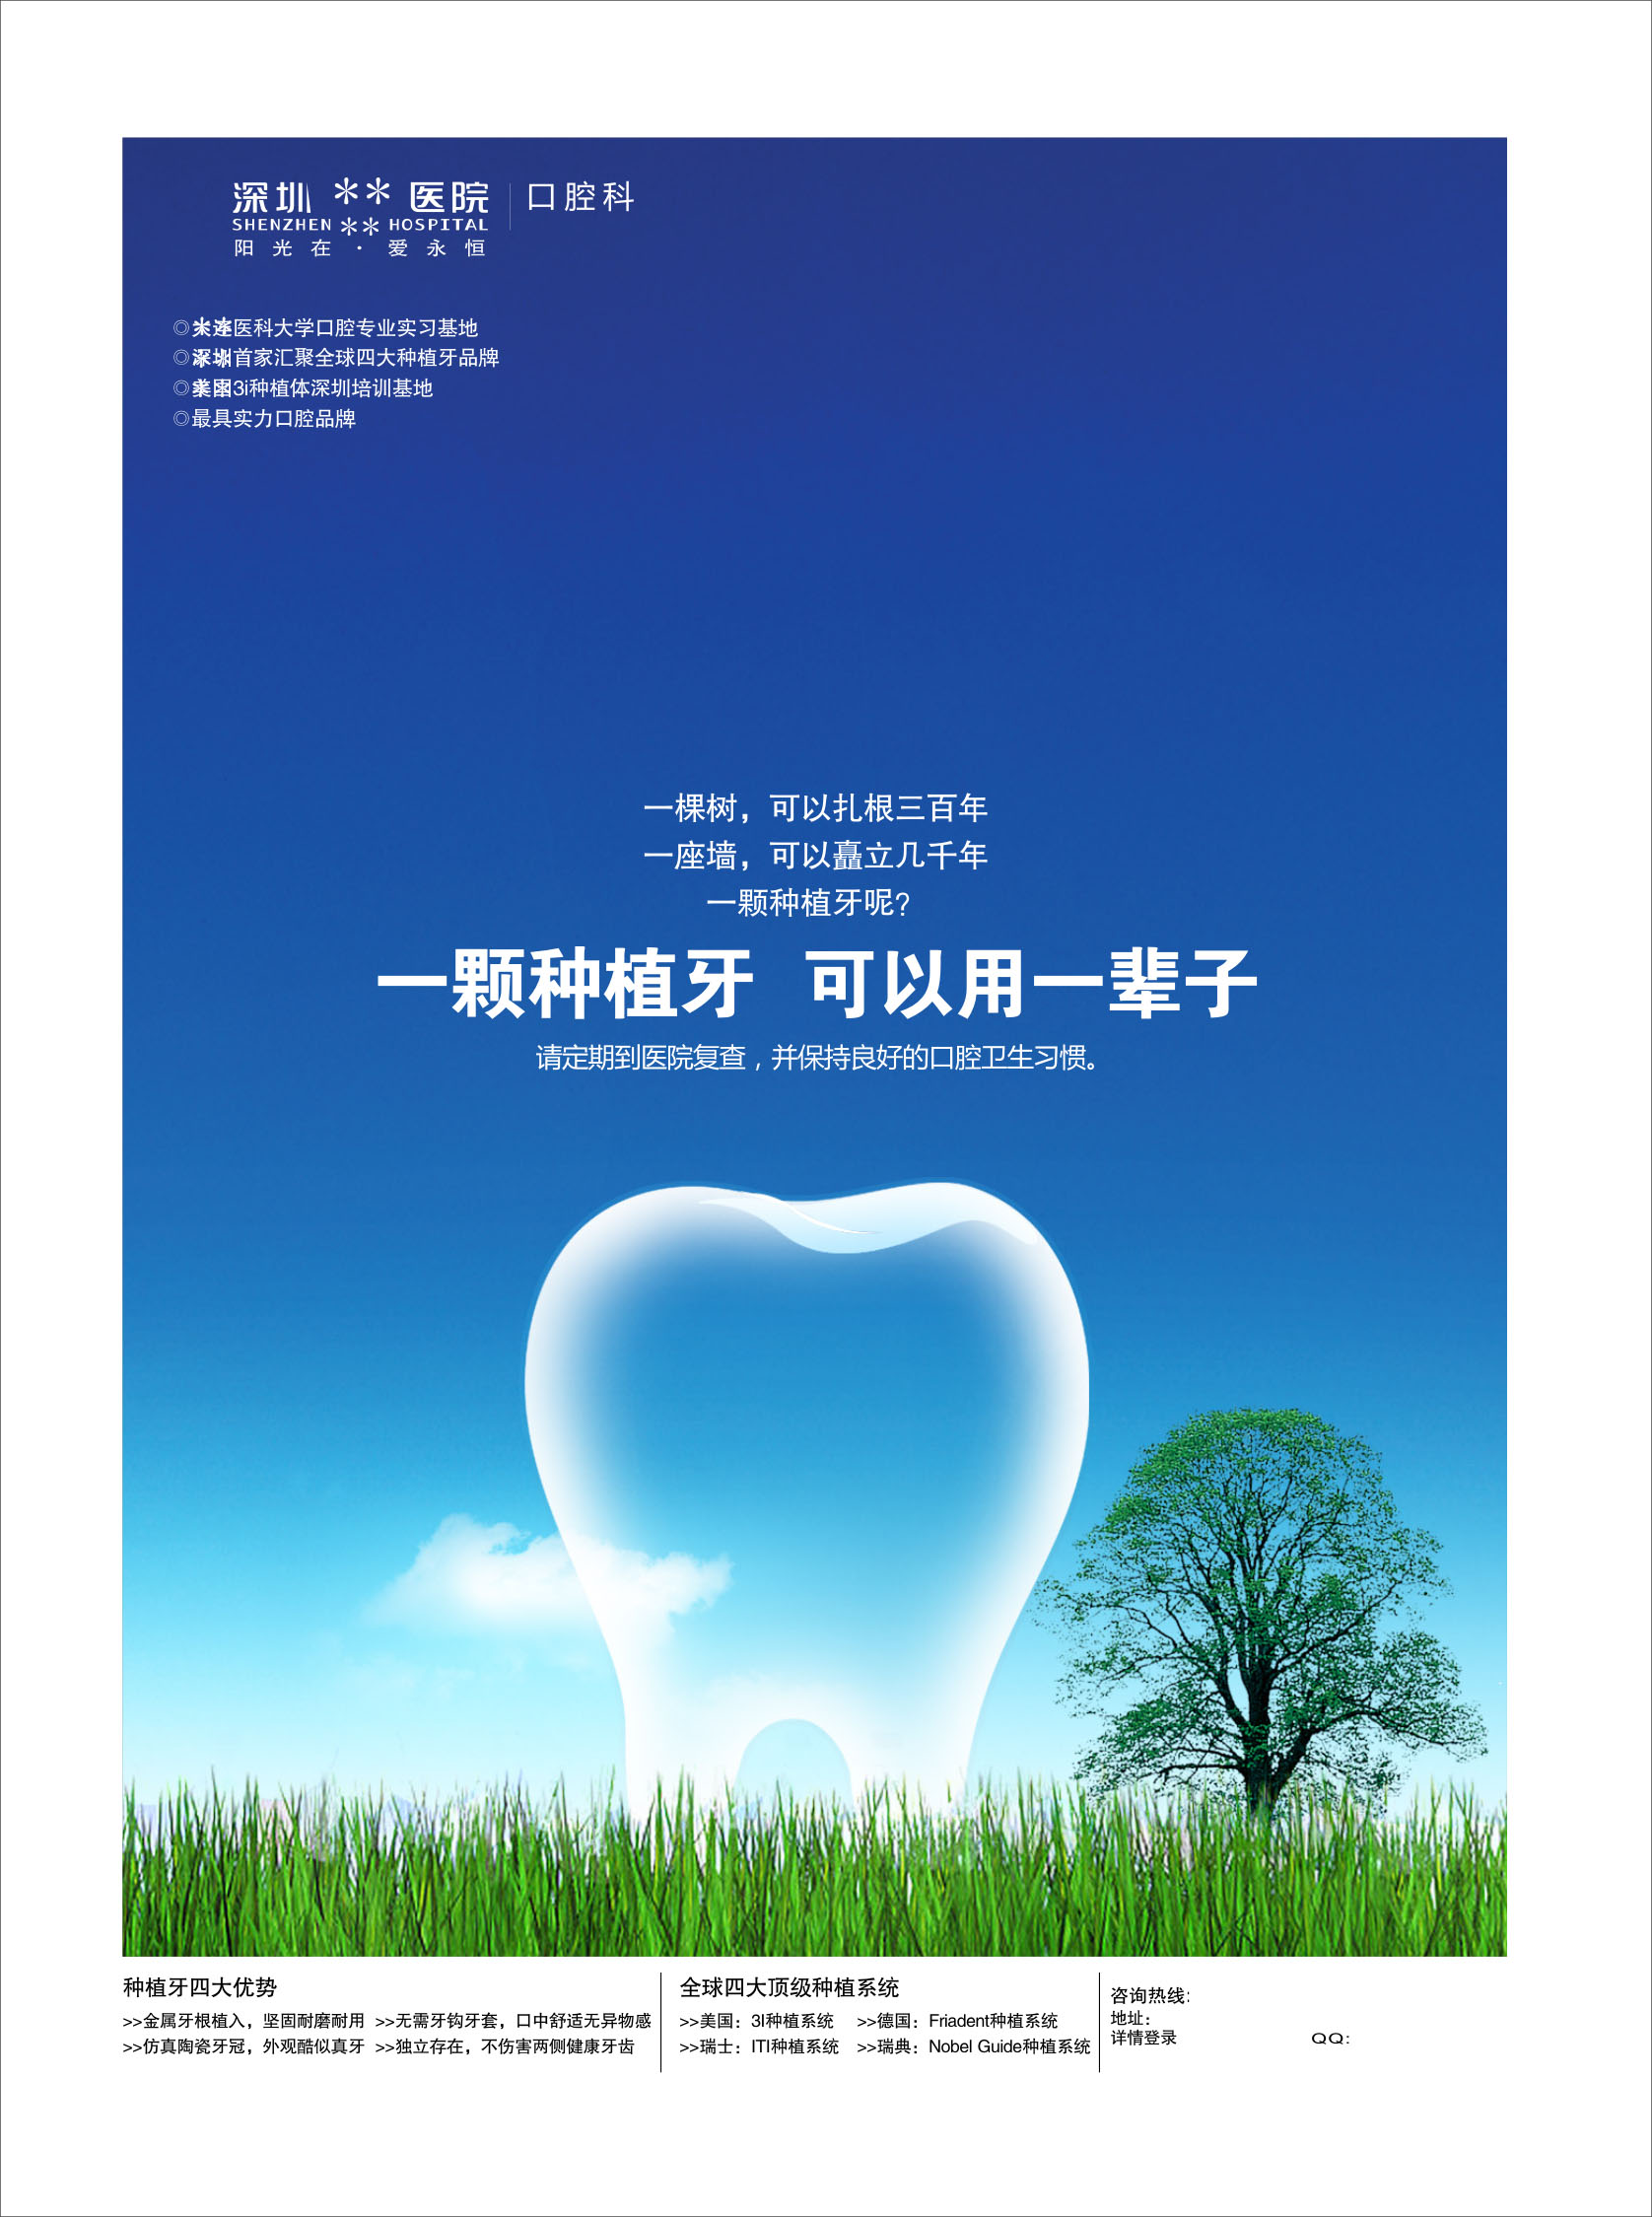 Dental Implant Quotes China Dental Implant China Dental Implant Shopping Guide At